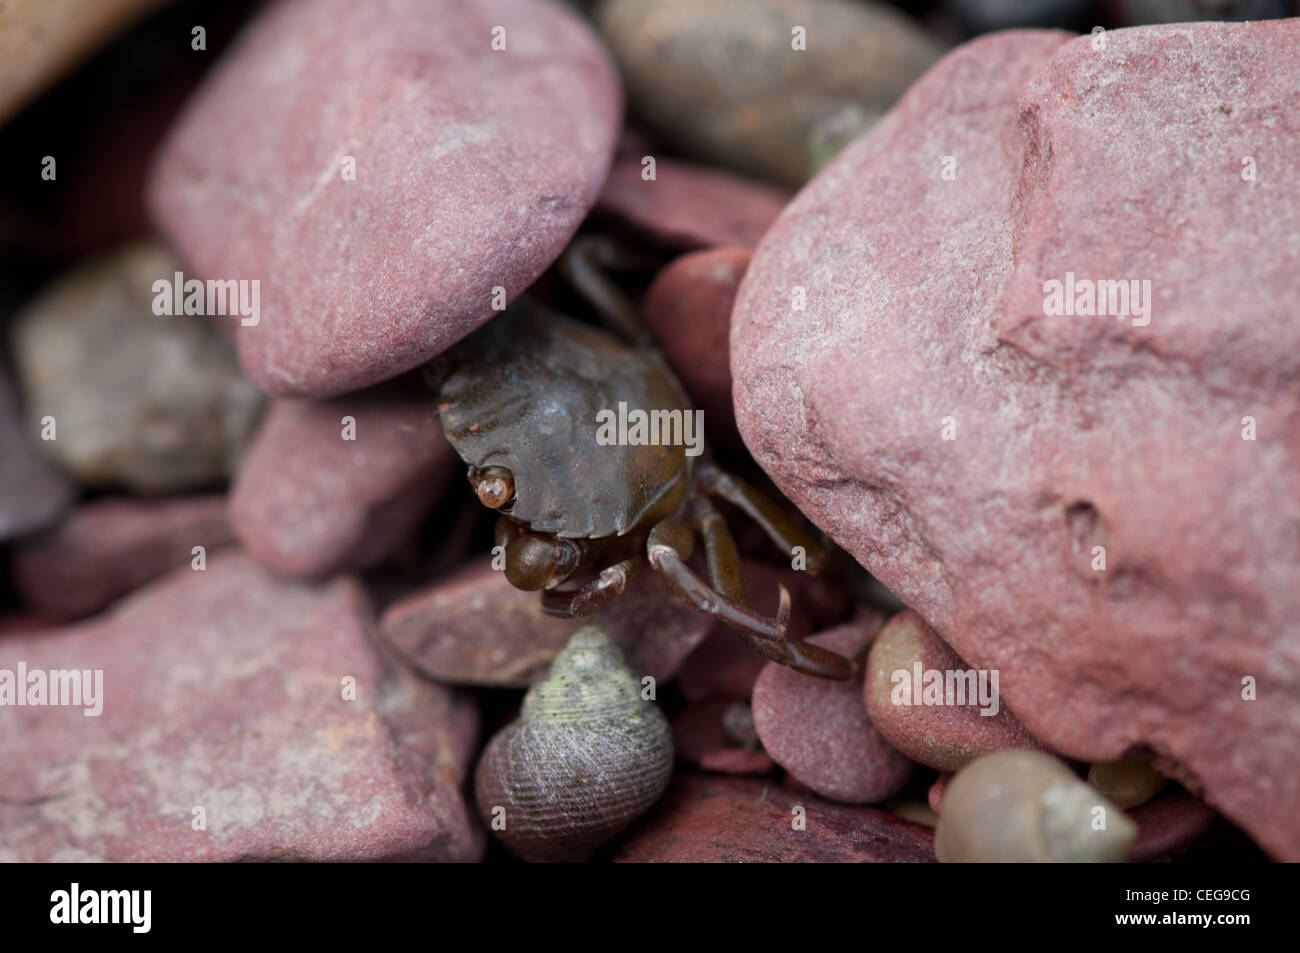 Crab in the rocks - Stock Image